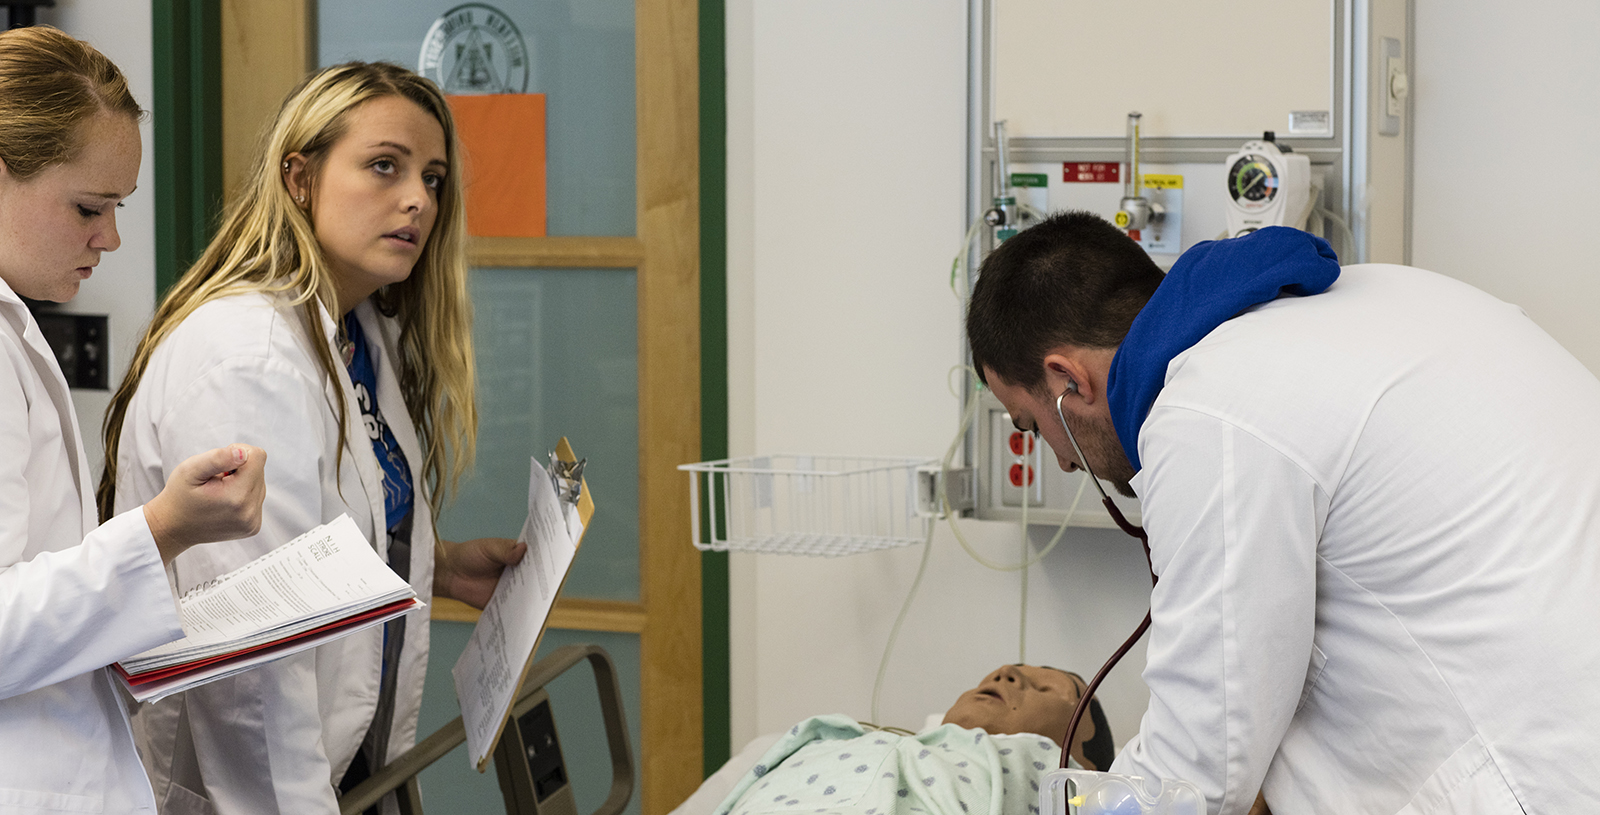 Students conducting nursing simulation